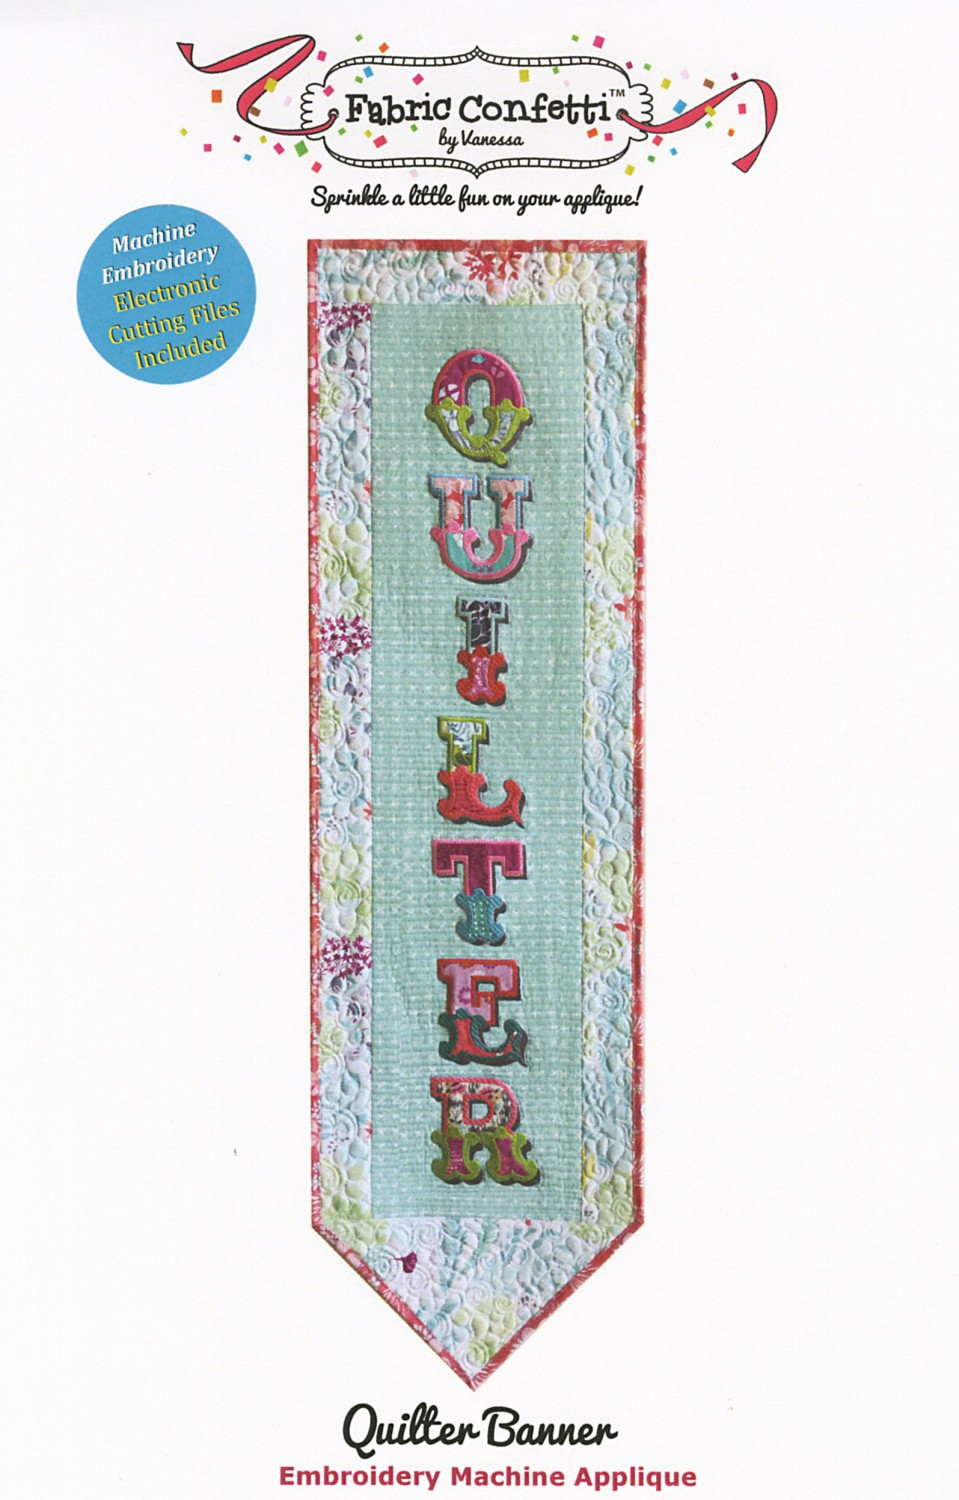 Quilter Banner by Fabric Confetti